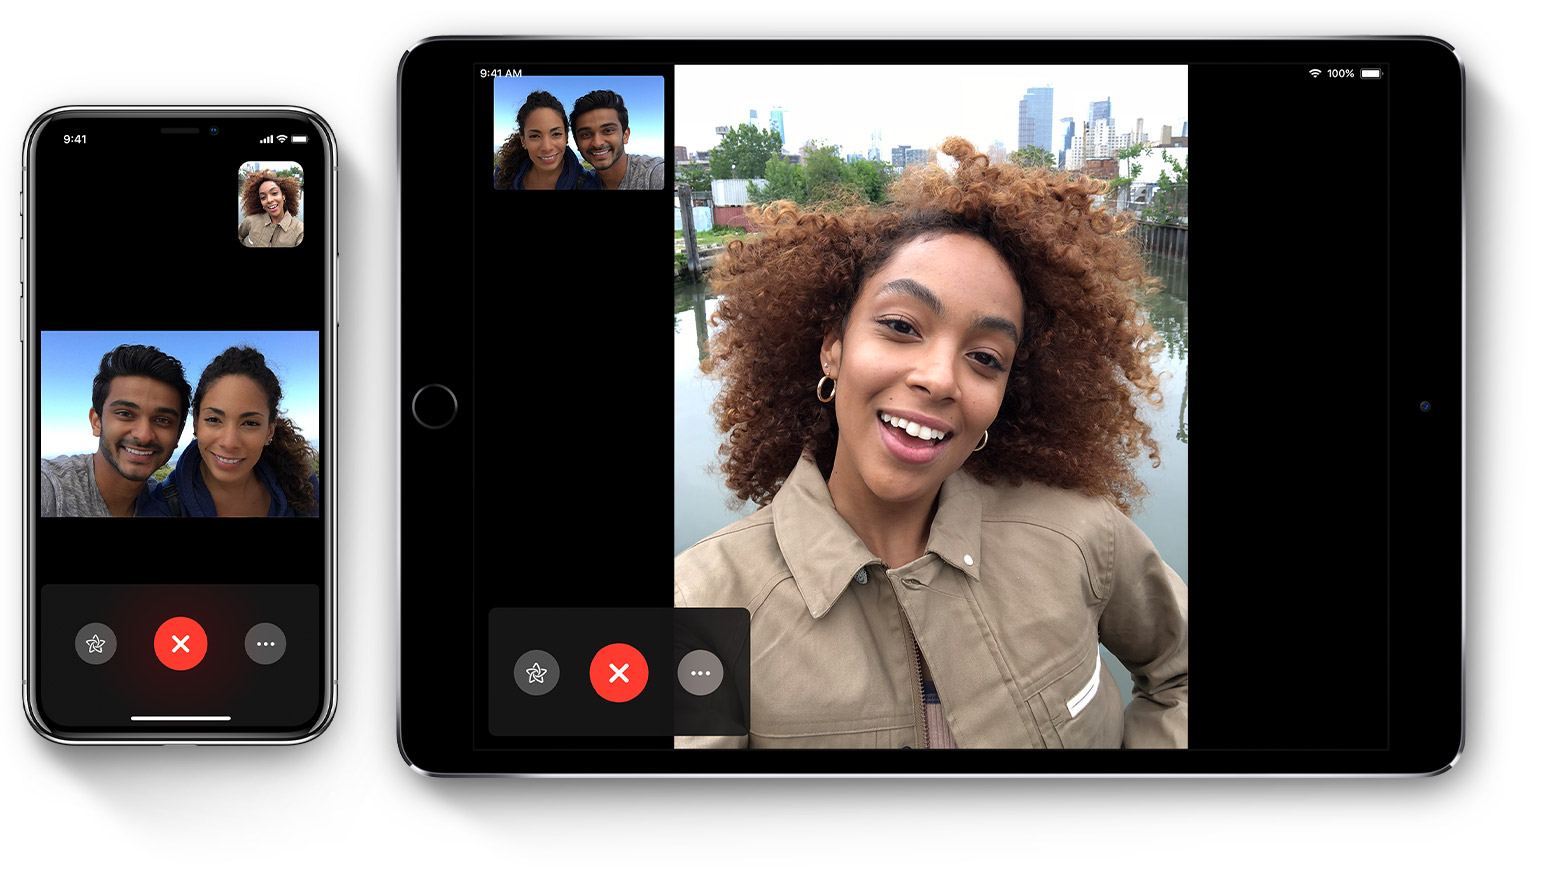 Is facetime free iphone to iphone